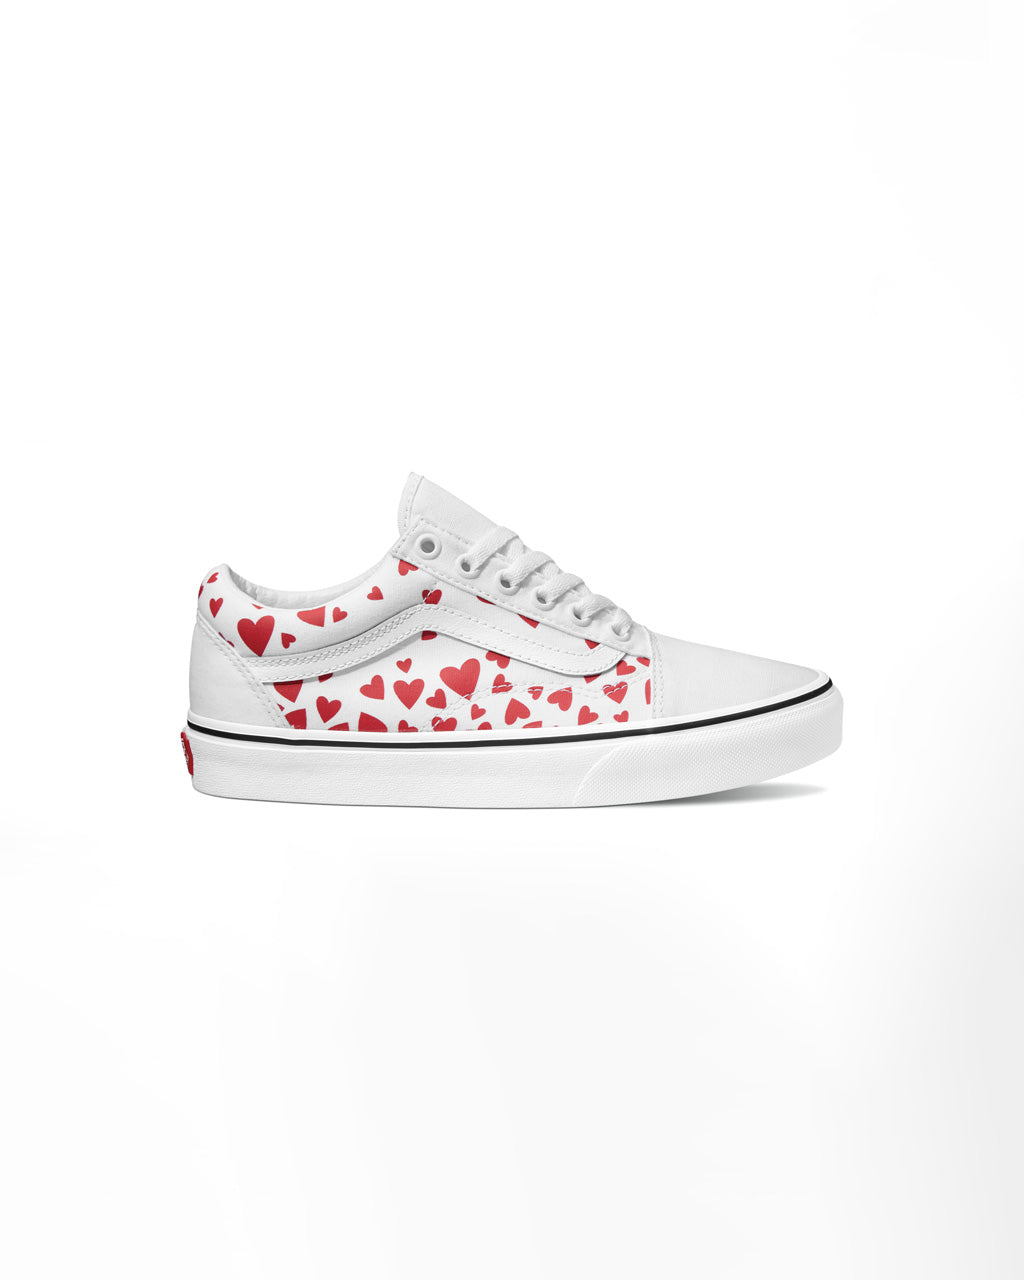 white old skool vans with red heart pattern with white toe, heel and sole